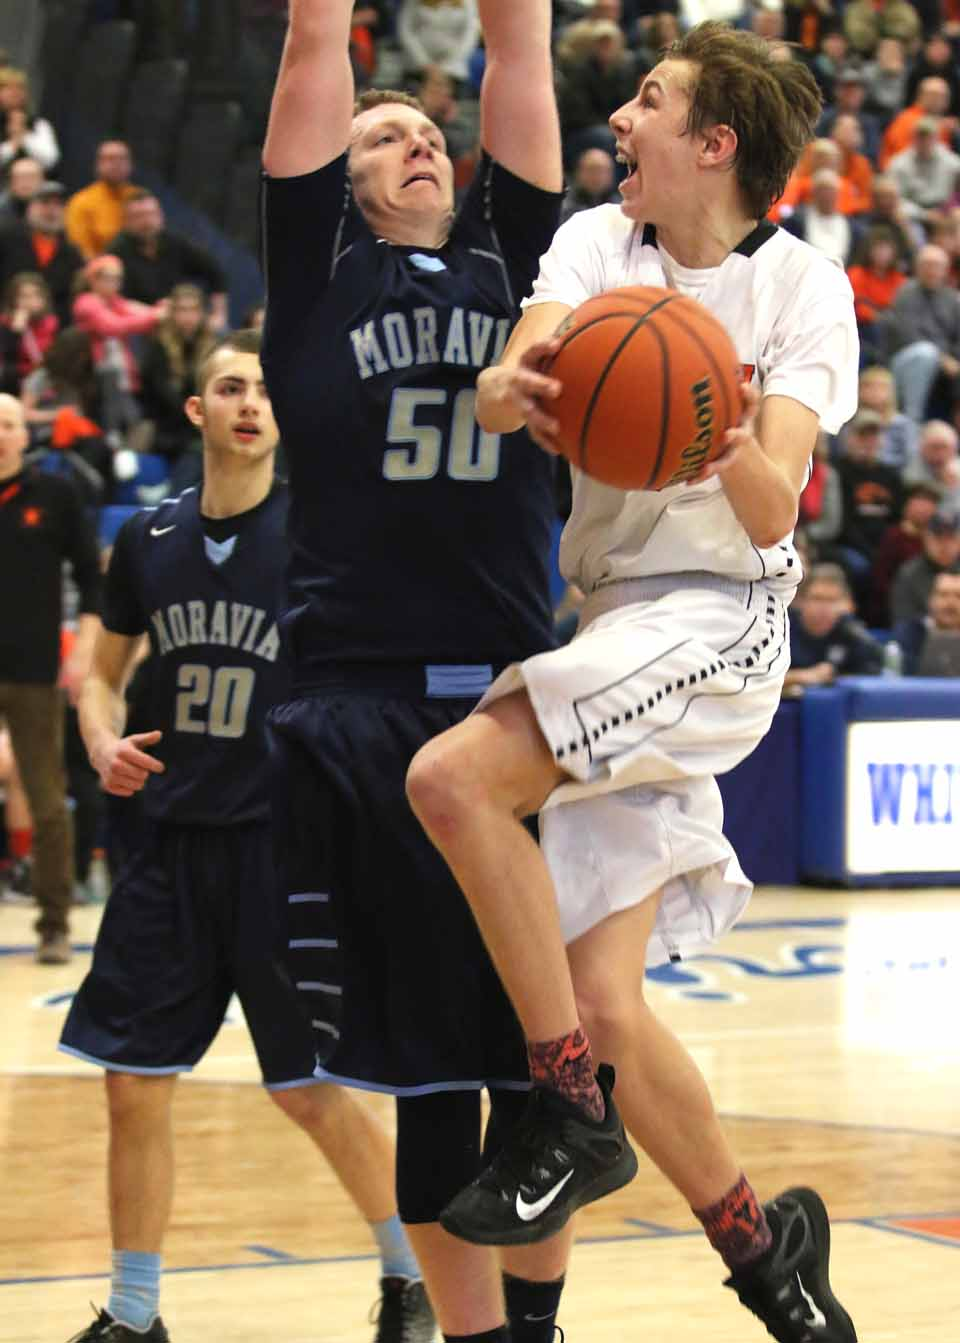 Despite 55 points by sophomore standout Tyler Bertram, the CCS Hawkeyes bowed to Moravia, 80-74, in the state quarter-finals in Whiteboro this afternoon. The two teams were neck and neck for most of the game, with Moravia gaining a lead in the fourth quarter. At this hour, the CCS girls are in the fourth quarter, 47-36.